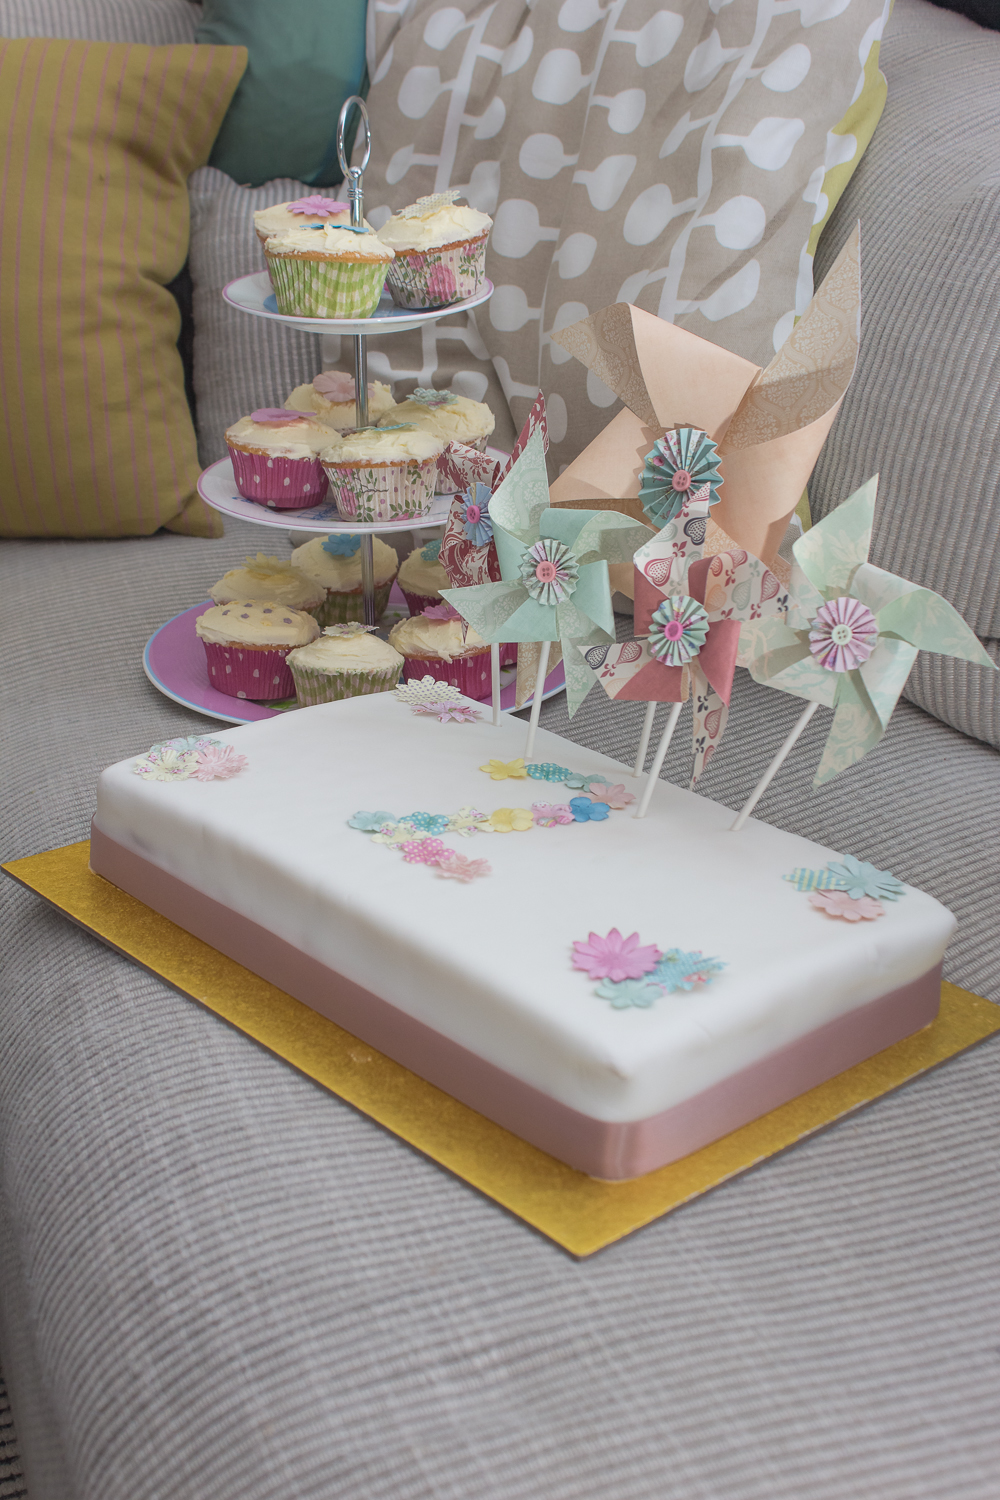 A child's second birthday cake - it's white with the number two decorated on in little edible flowers, with handmaid windmills along the top